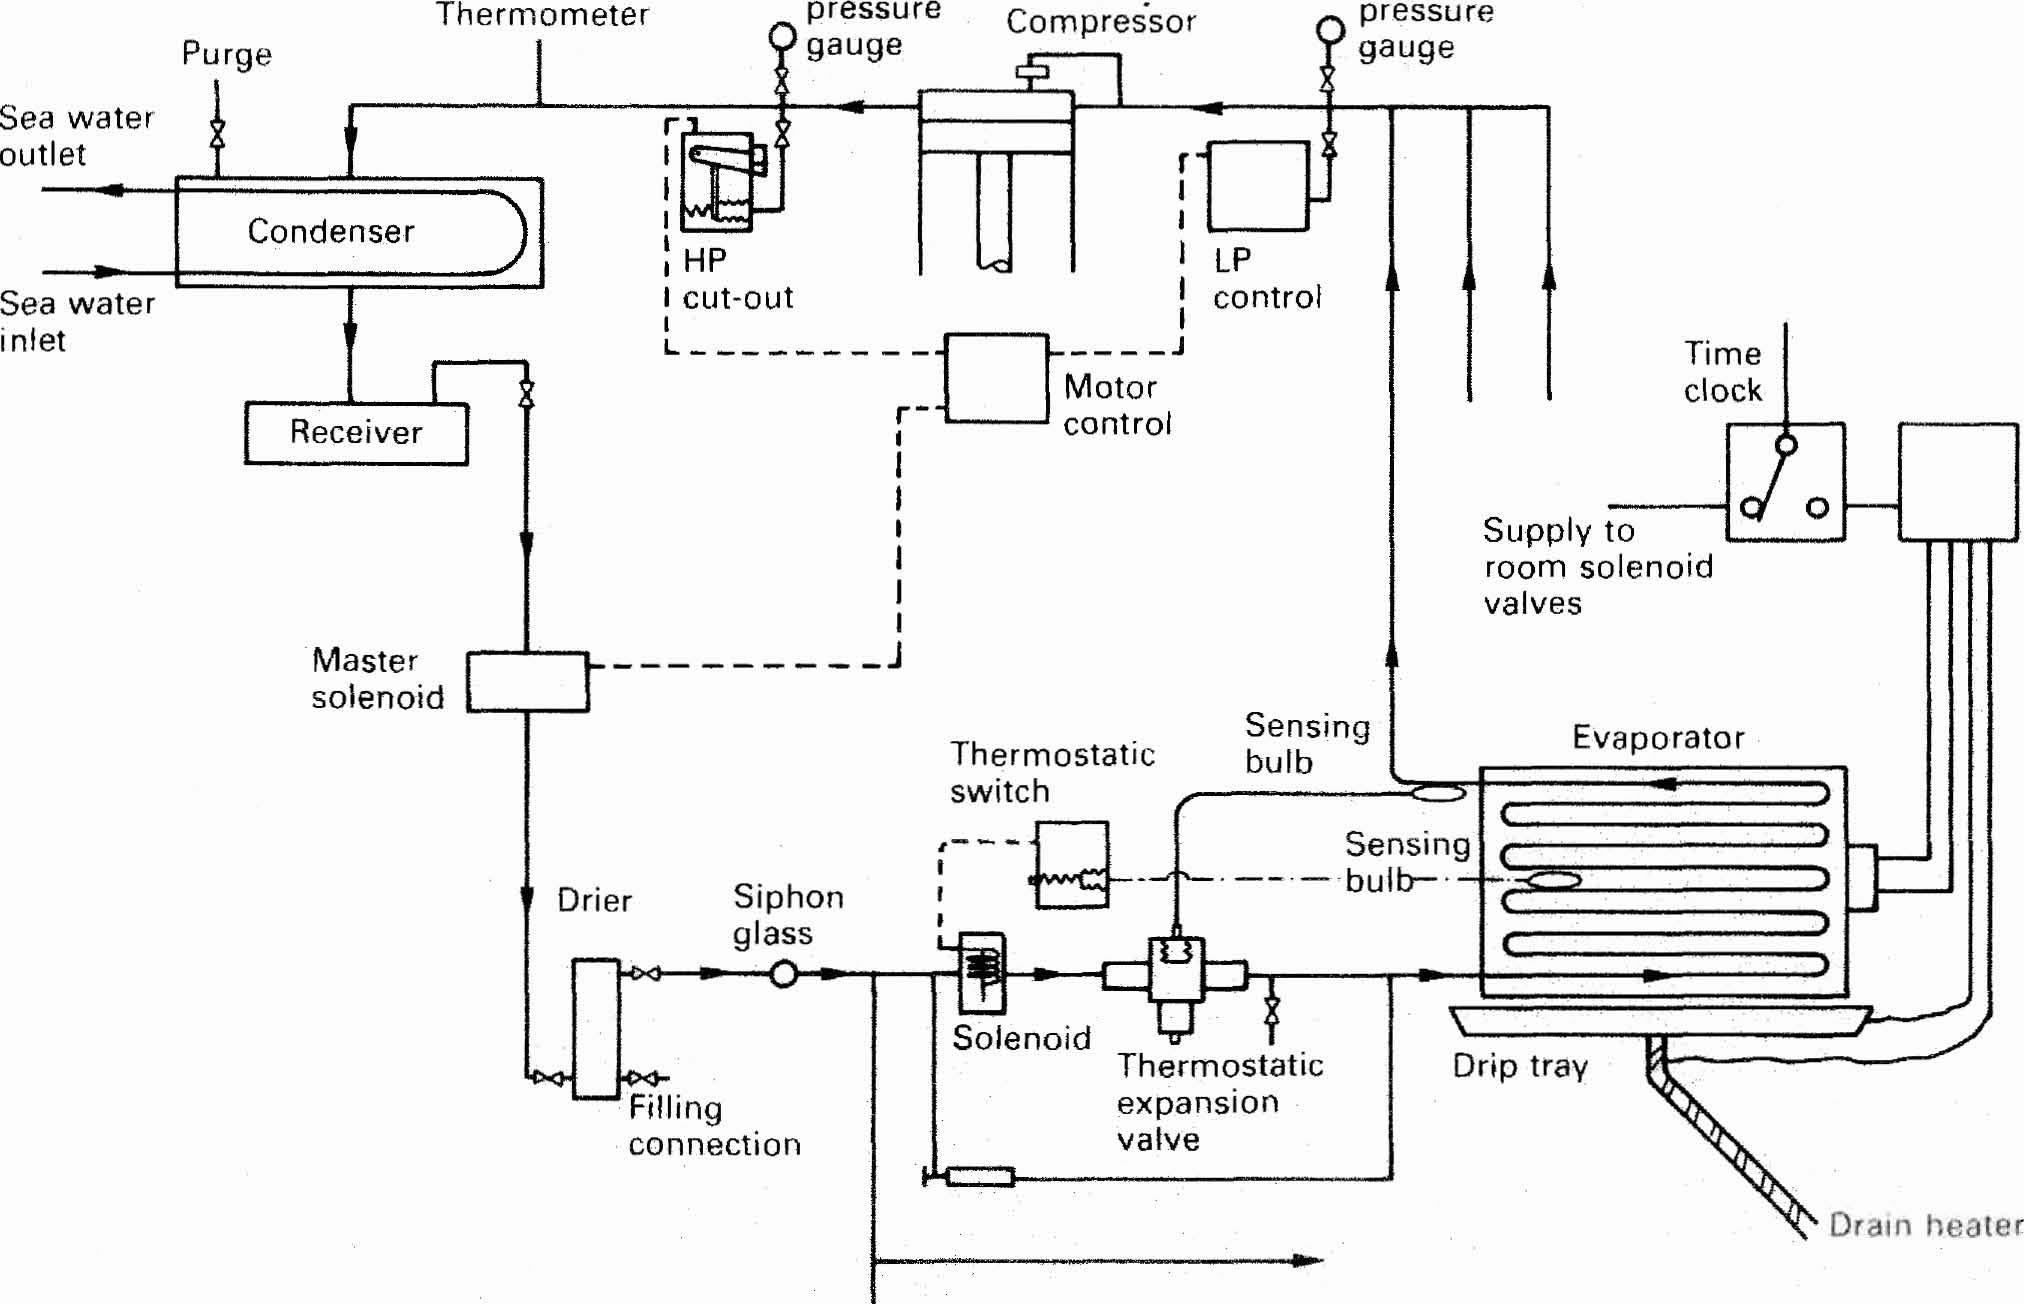 coleman furnace wiring diagram images coleman gas furnace wiring diagram also honeywell thermostat wiring